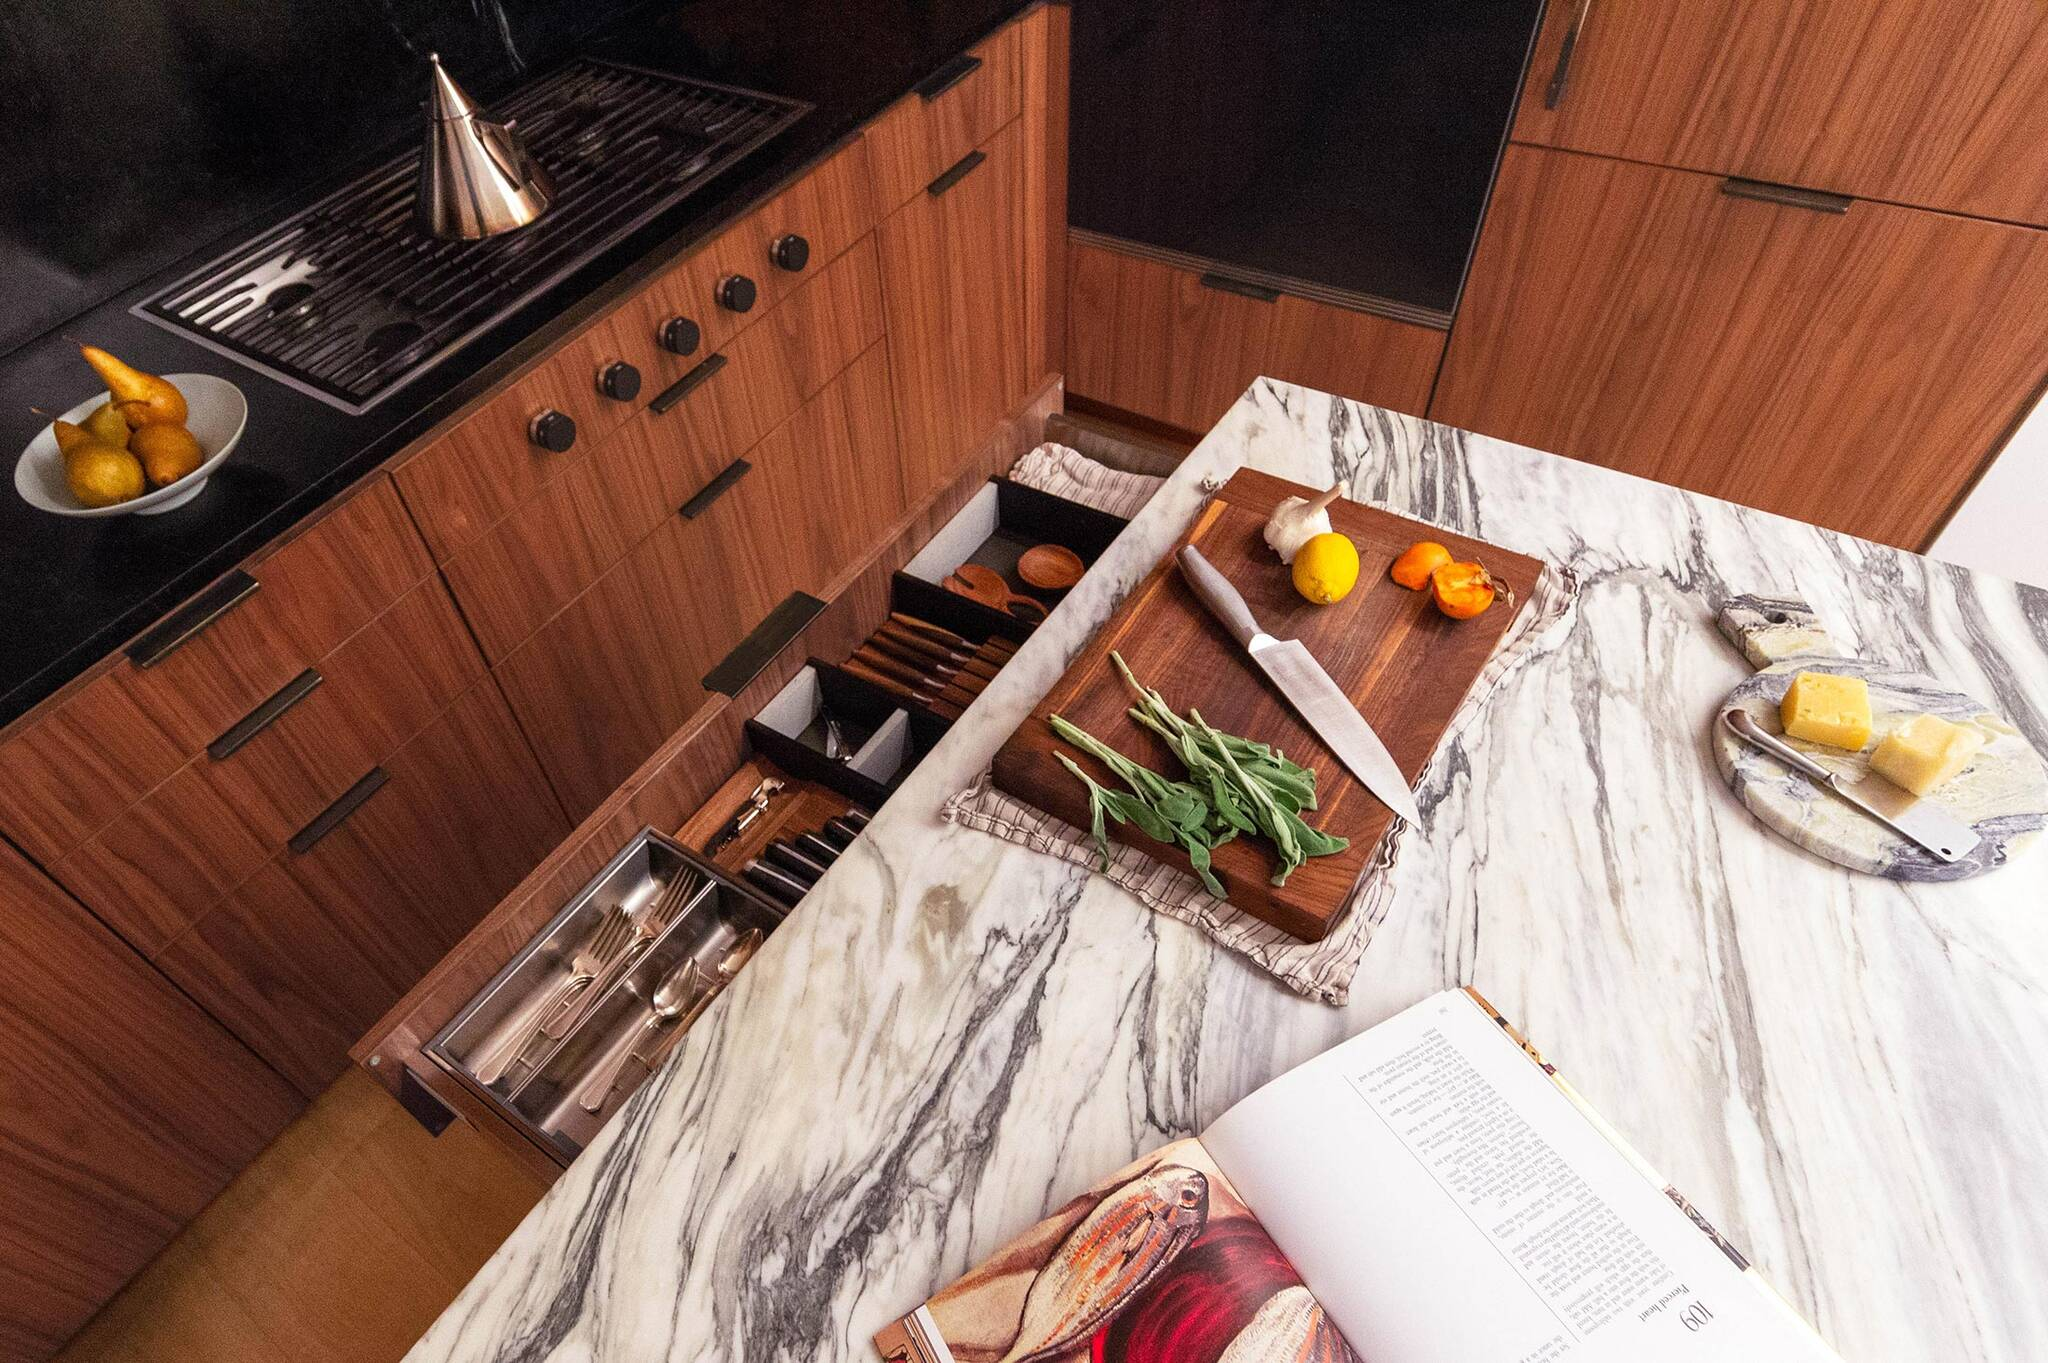 Marble island and stove top on the kitchen of the Loft renovation project in Chelsea, New York City designed by the architecture studio Danny Forster & Architecture